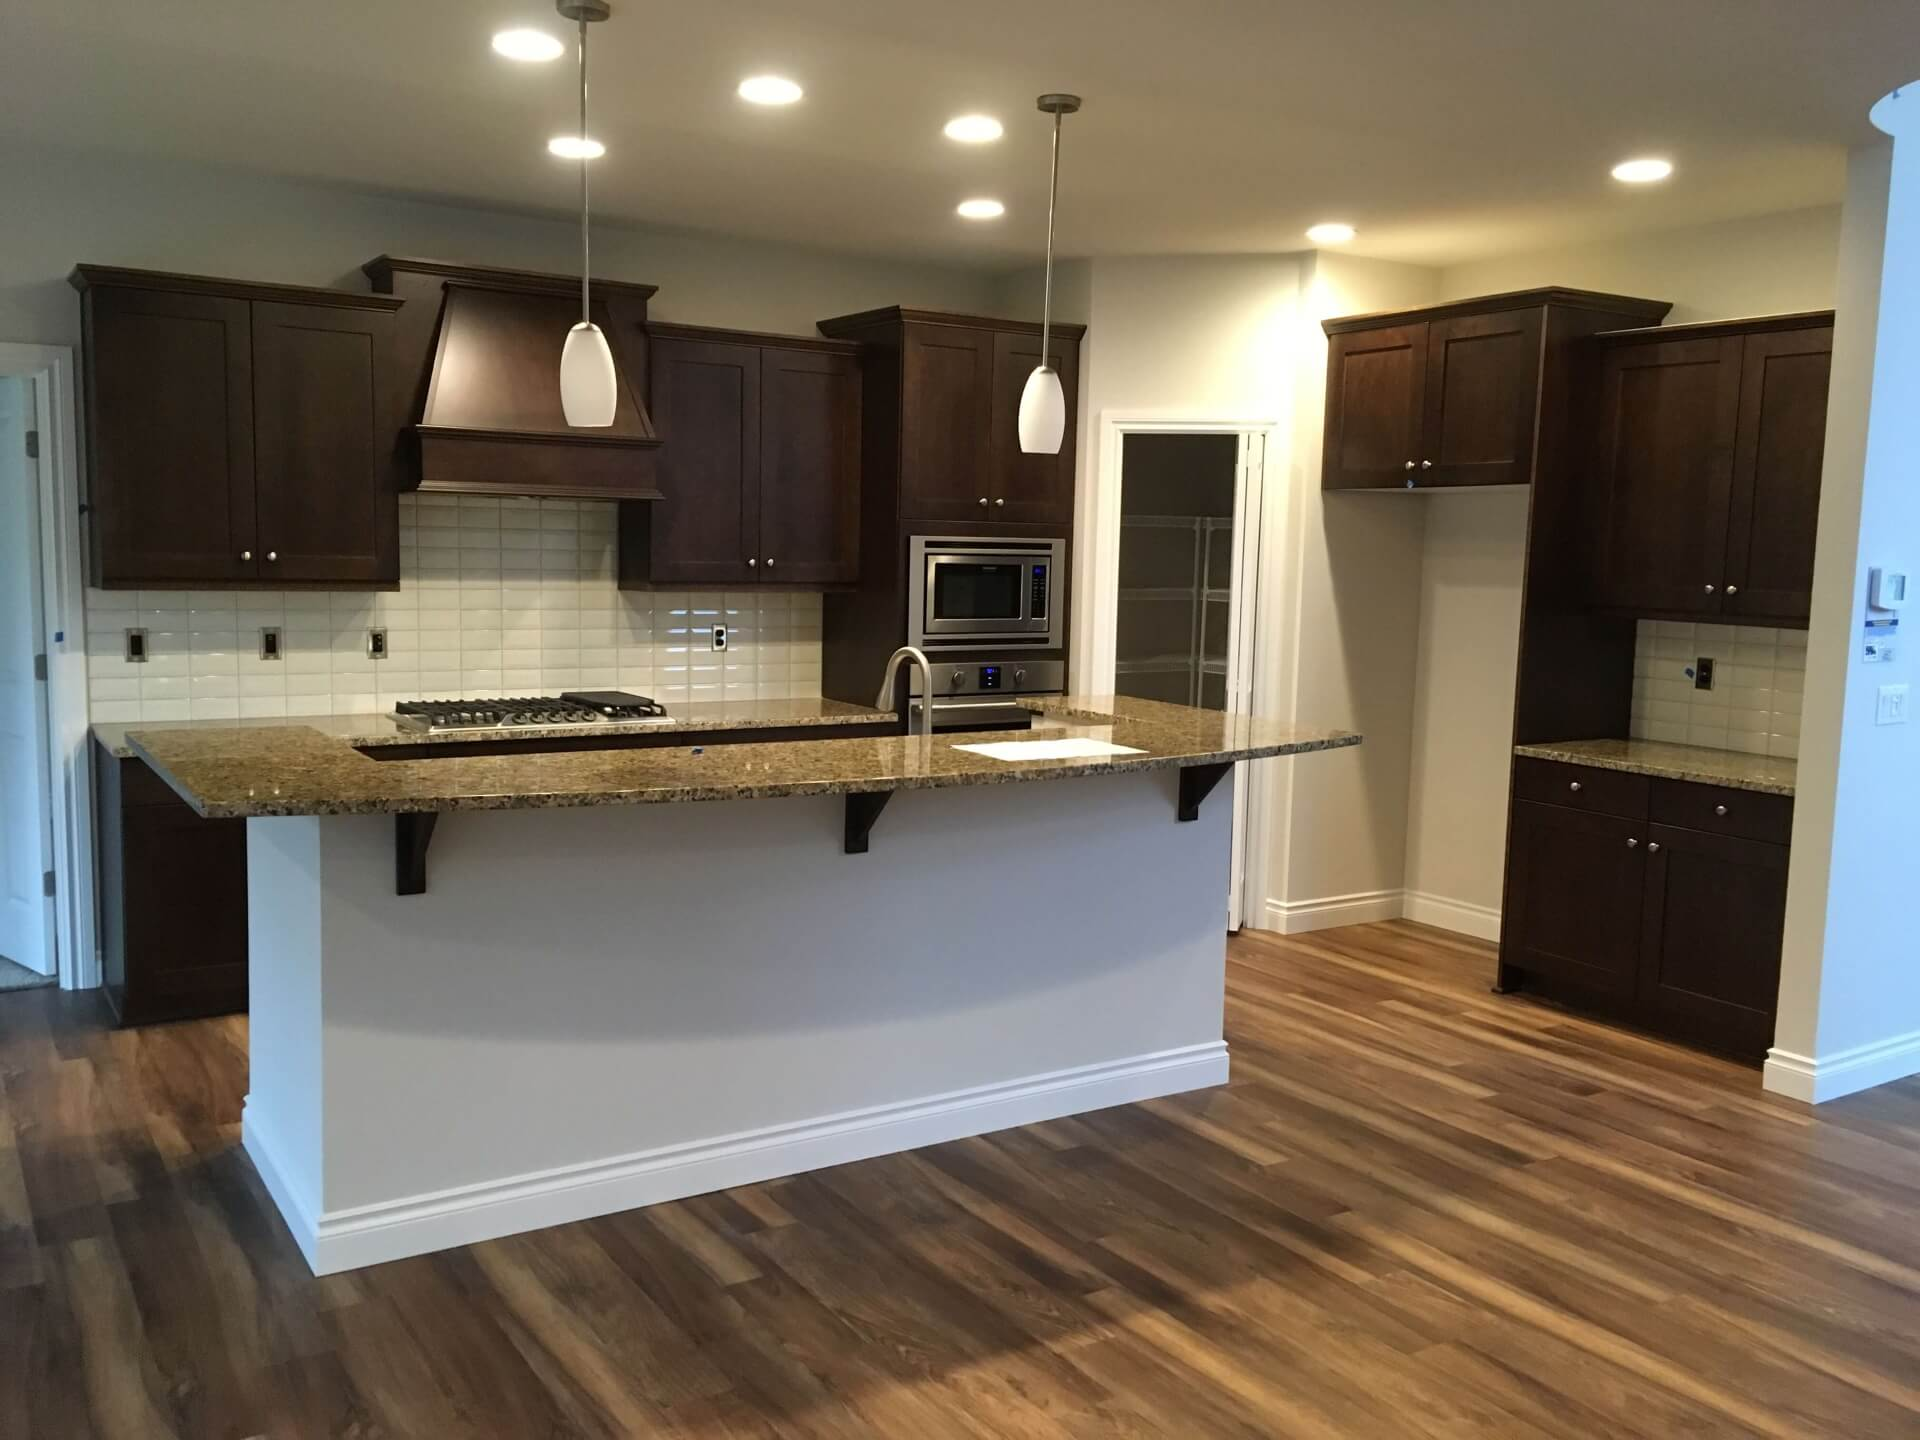 Professional kitchen remodel in Seattle